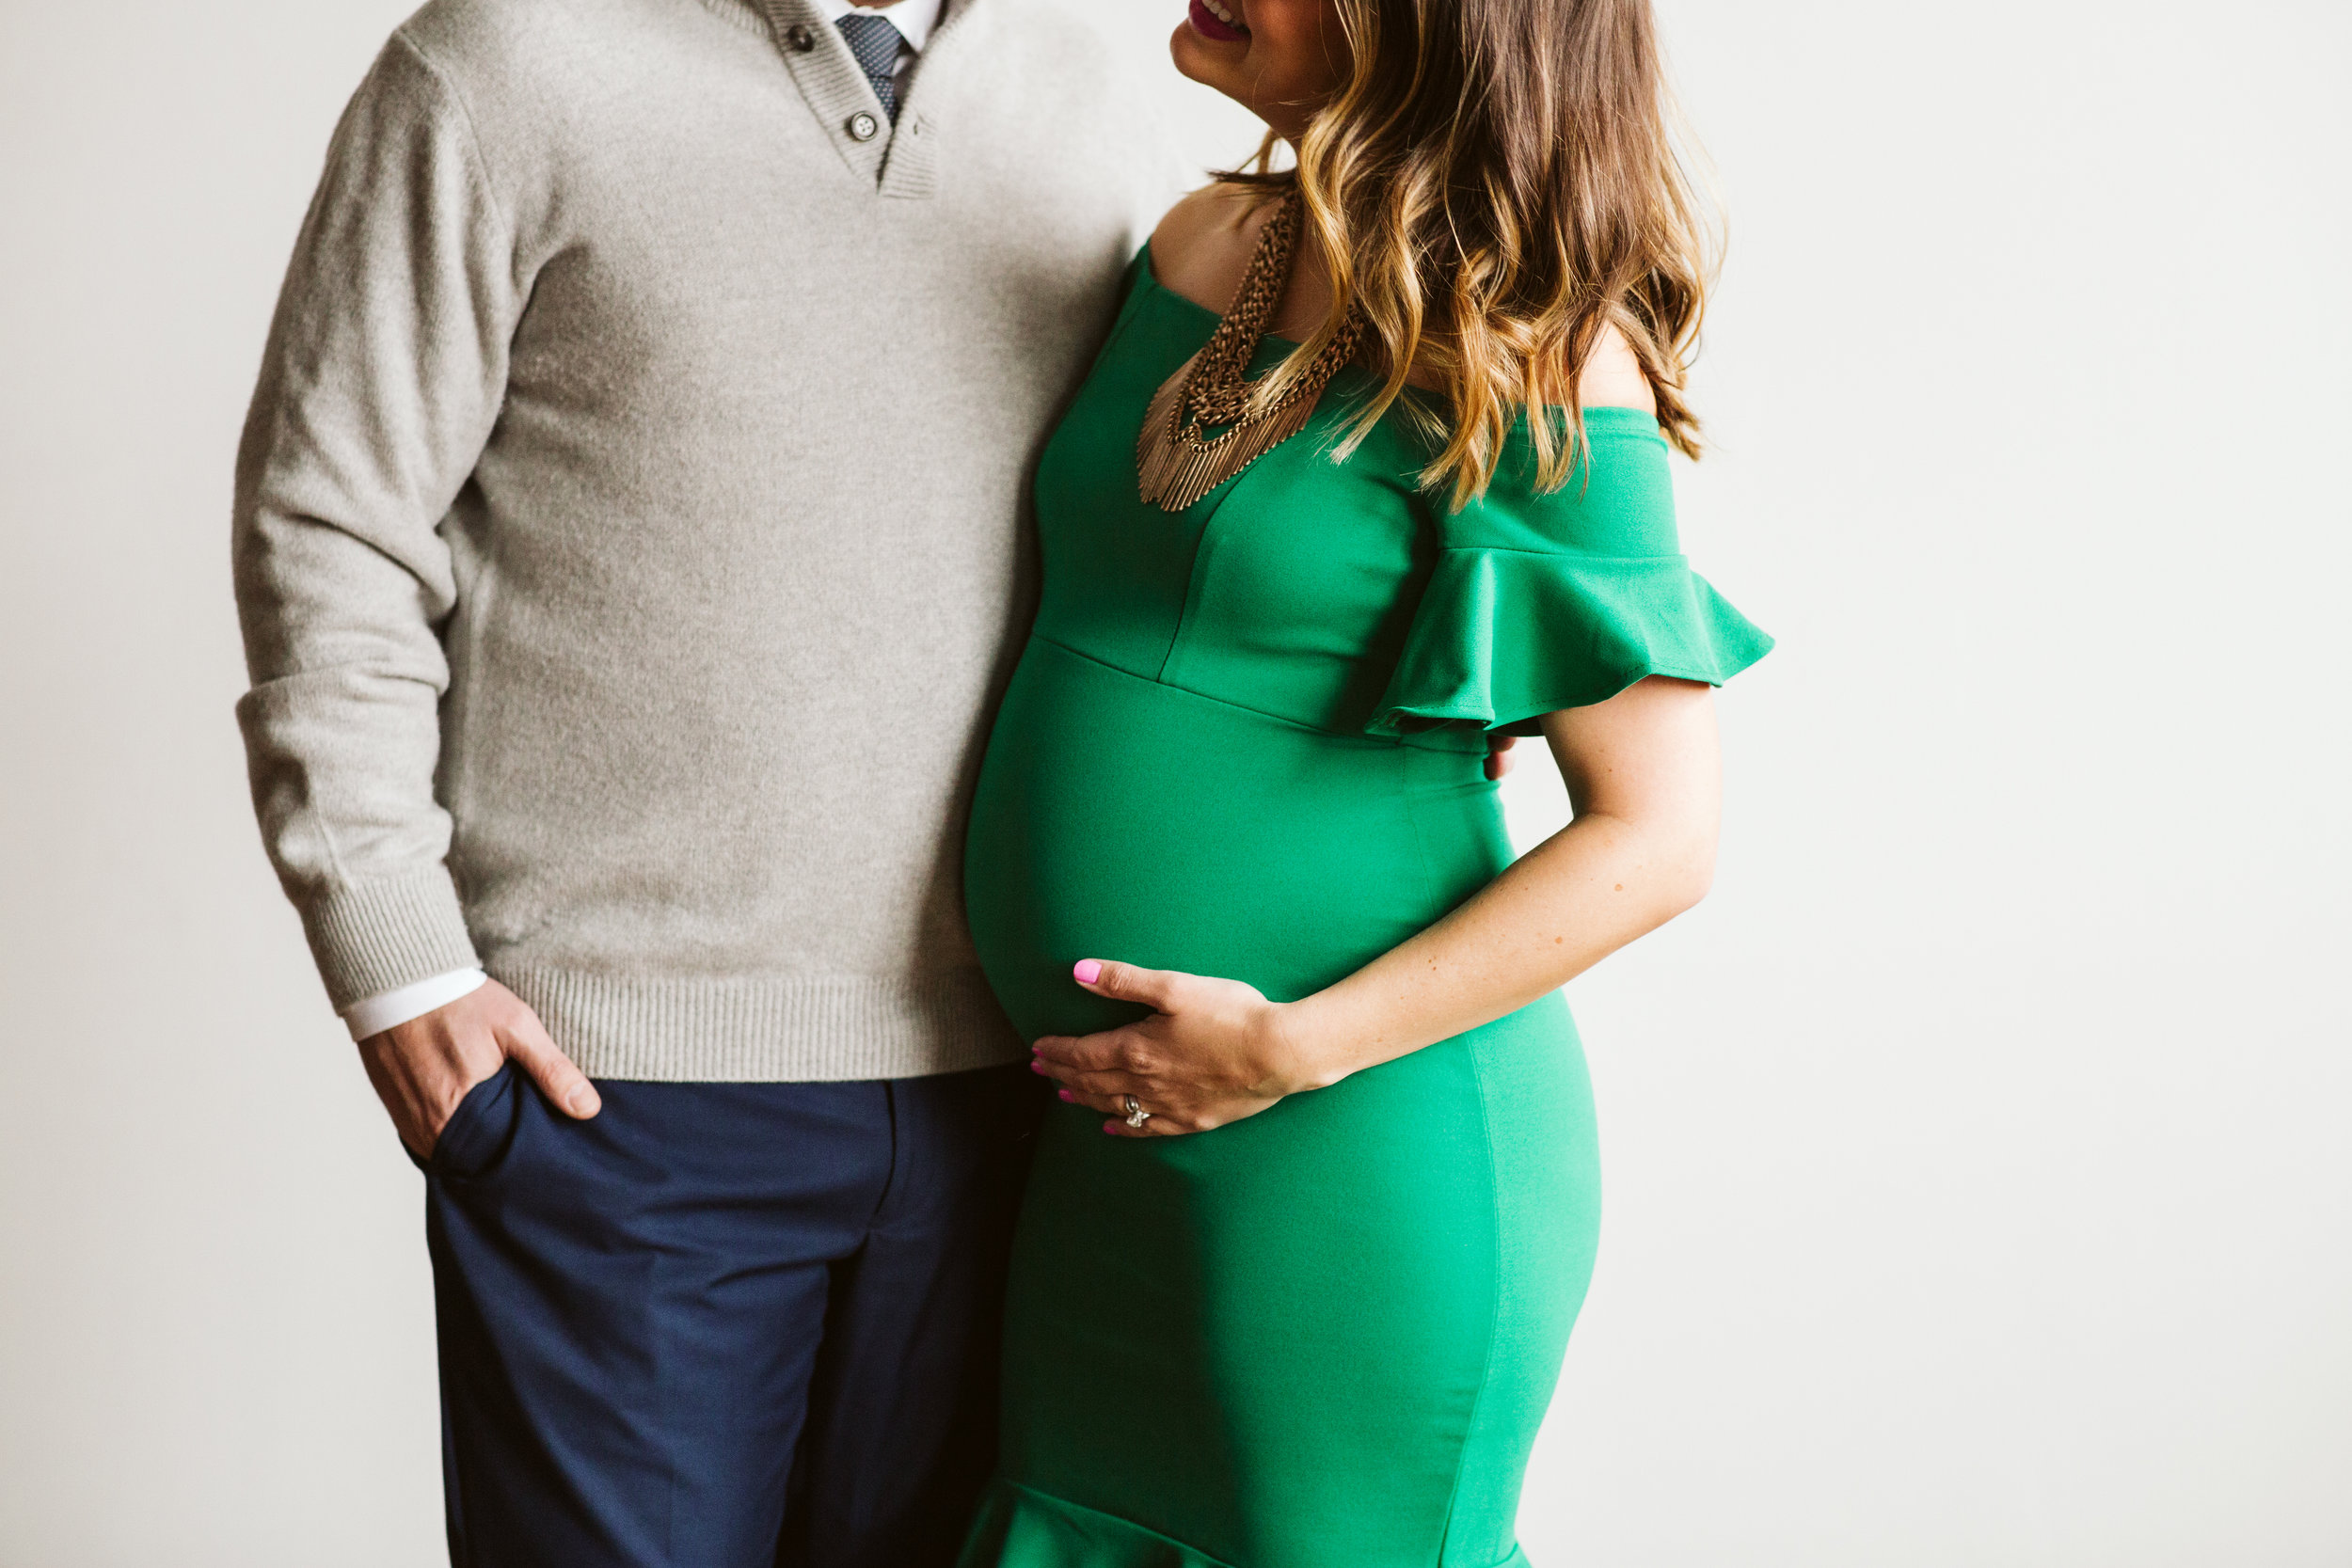 Maternity Photo - Tyler & Maria